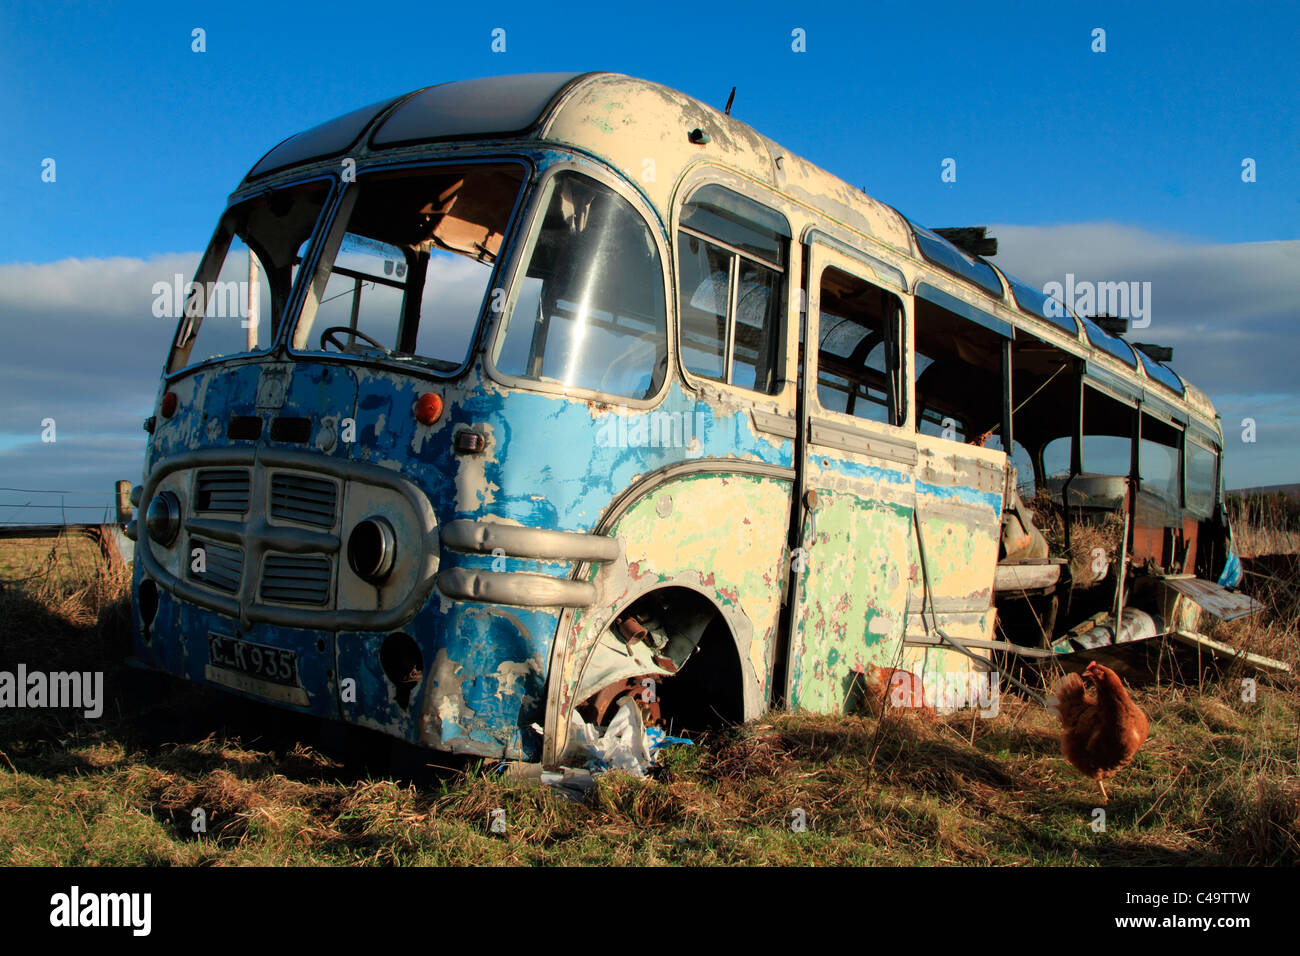 Old Bedford bus, Orkney isles - Stock Image